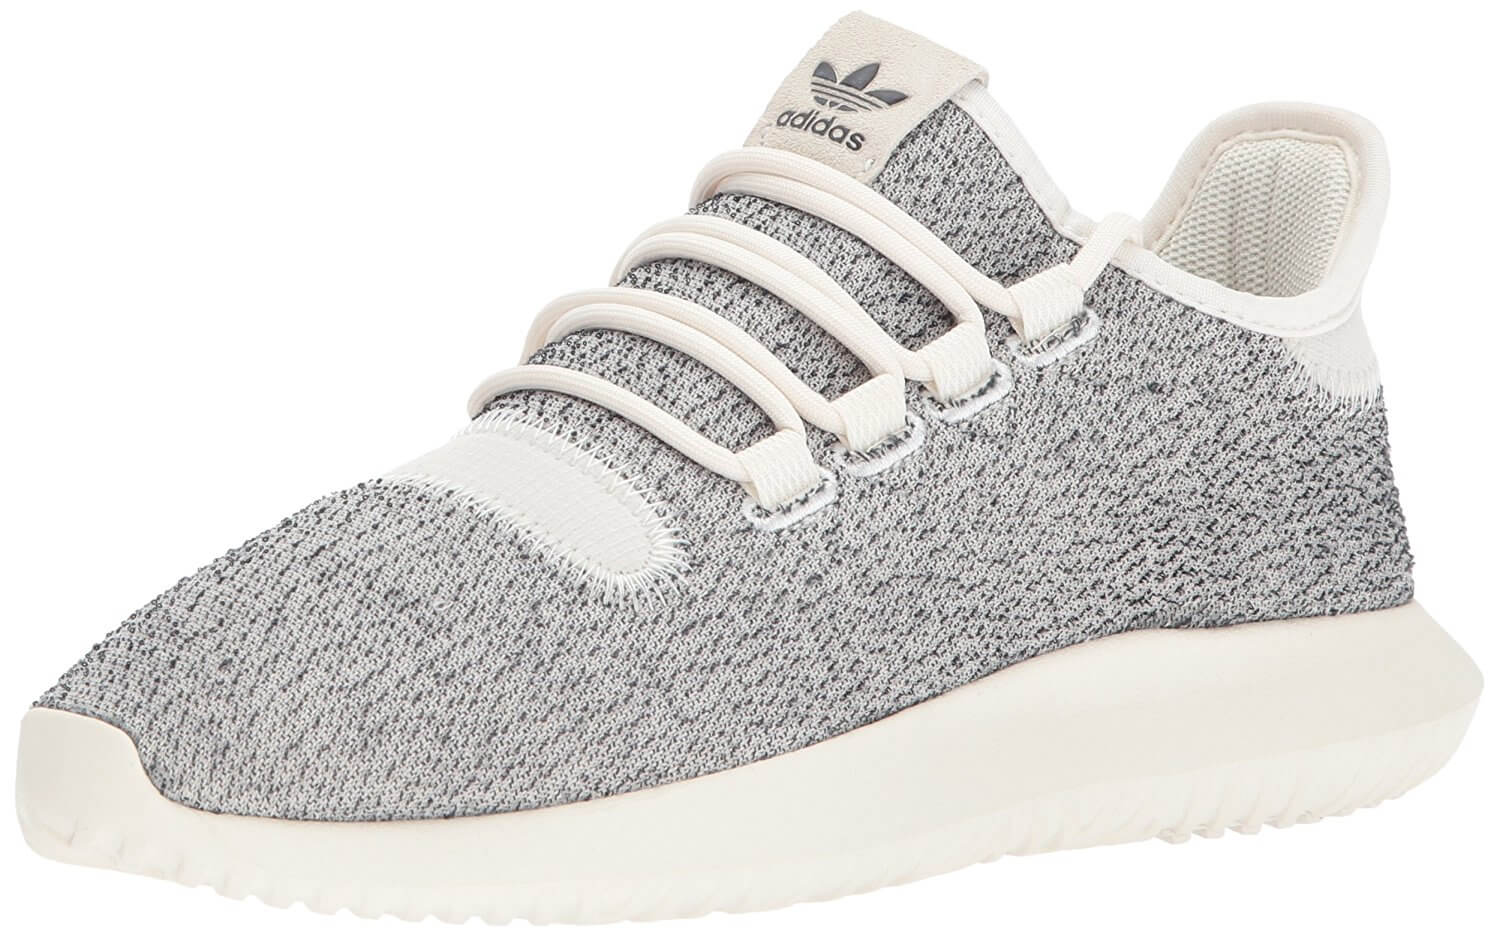 adidas tubular bounce leather shoe